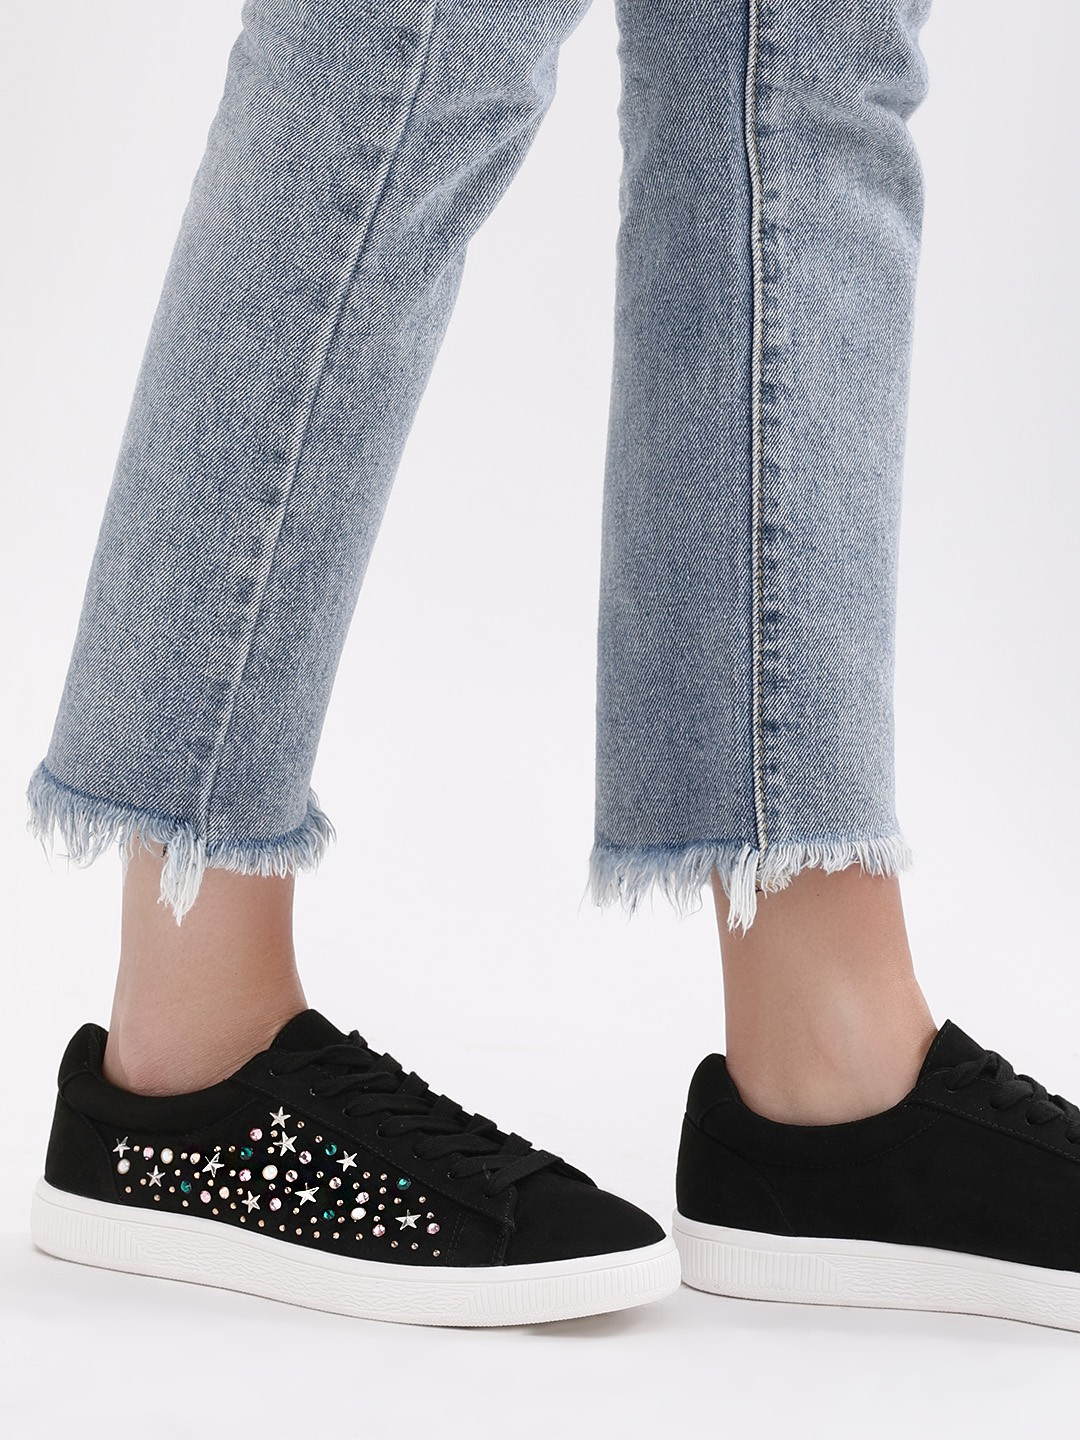 New Look Black Embellished Side Lace Up Shoes 1